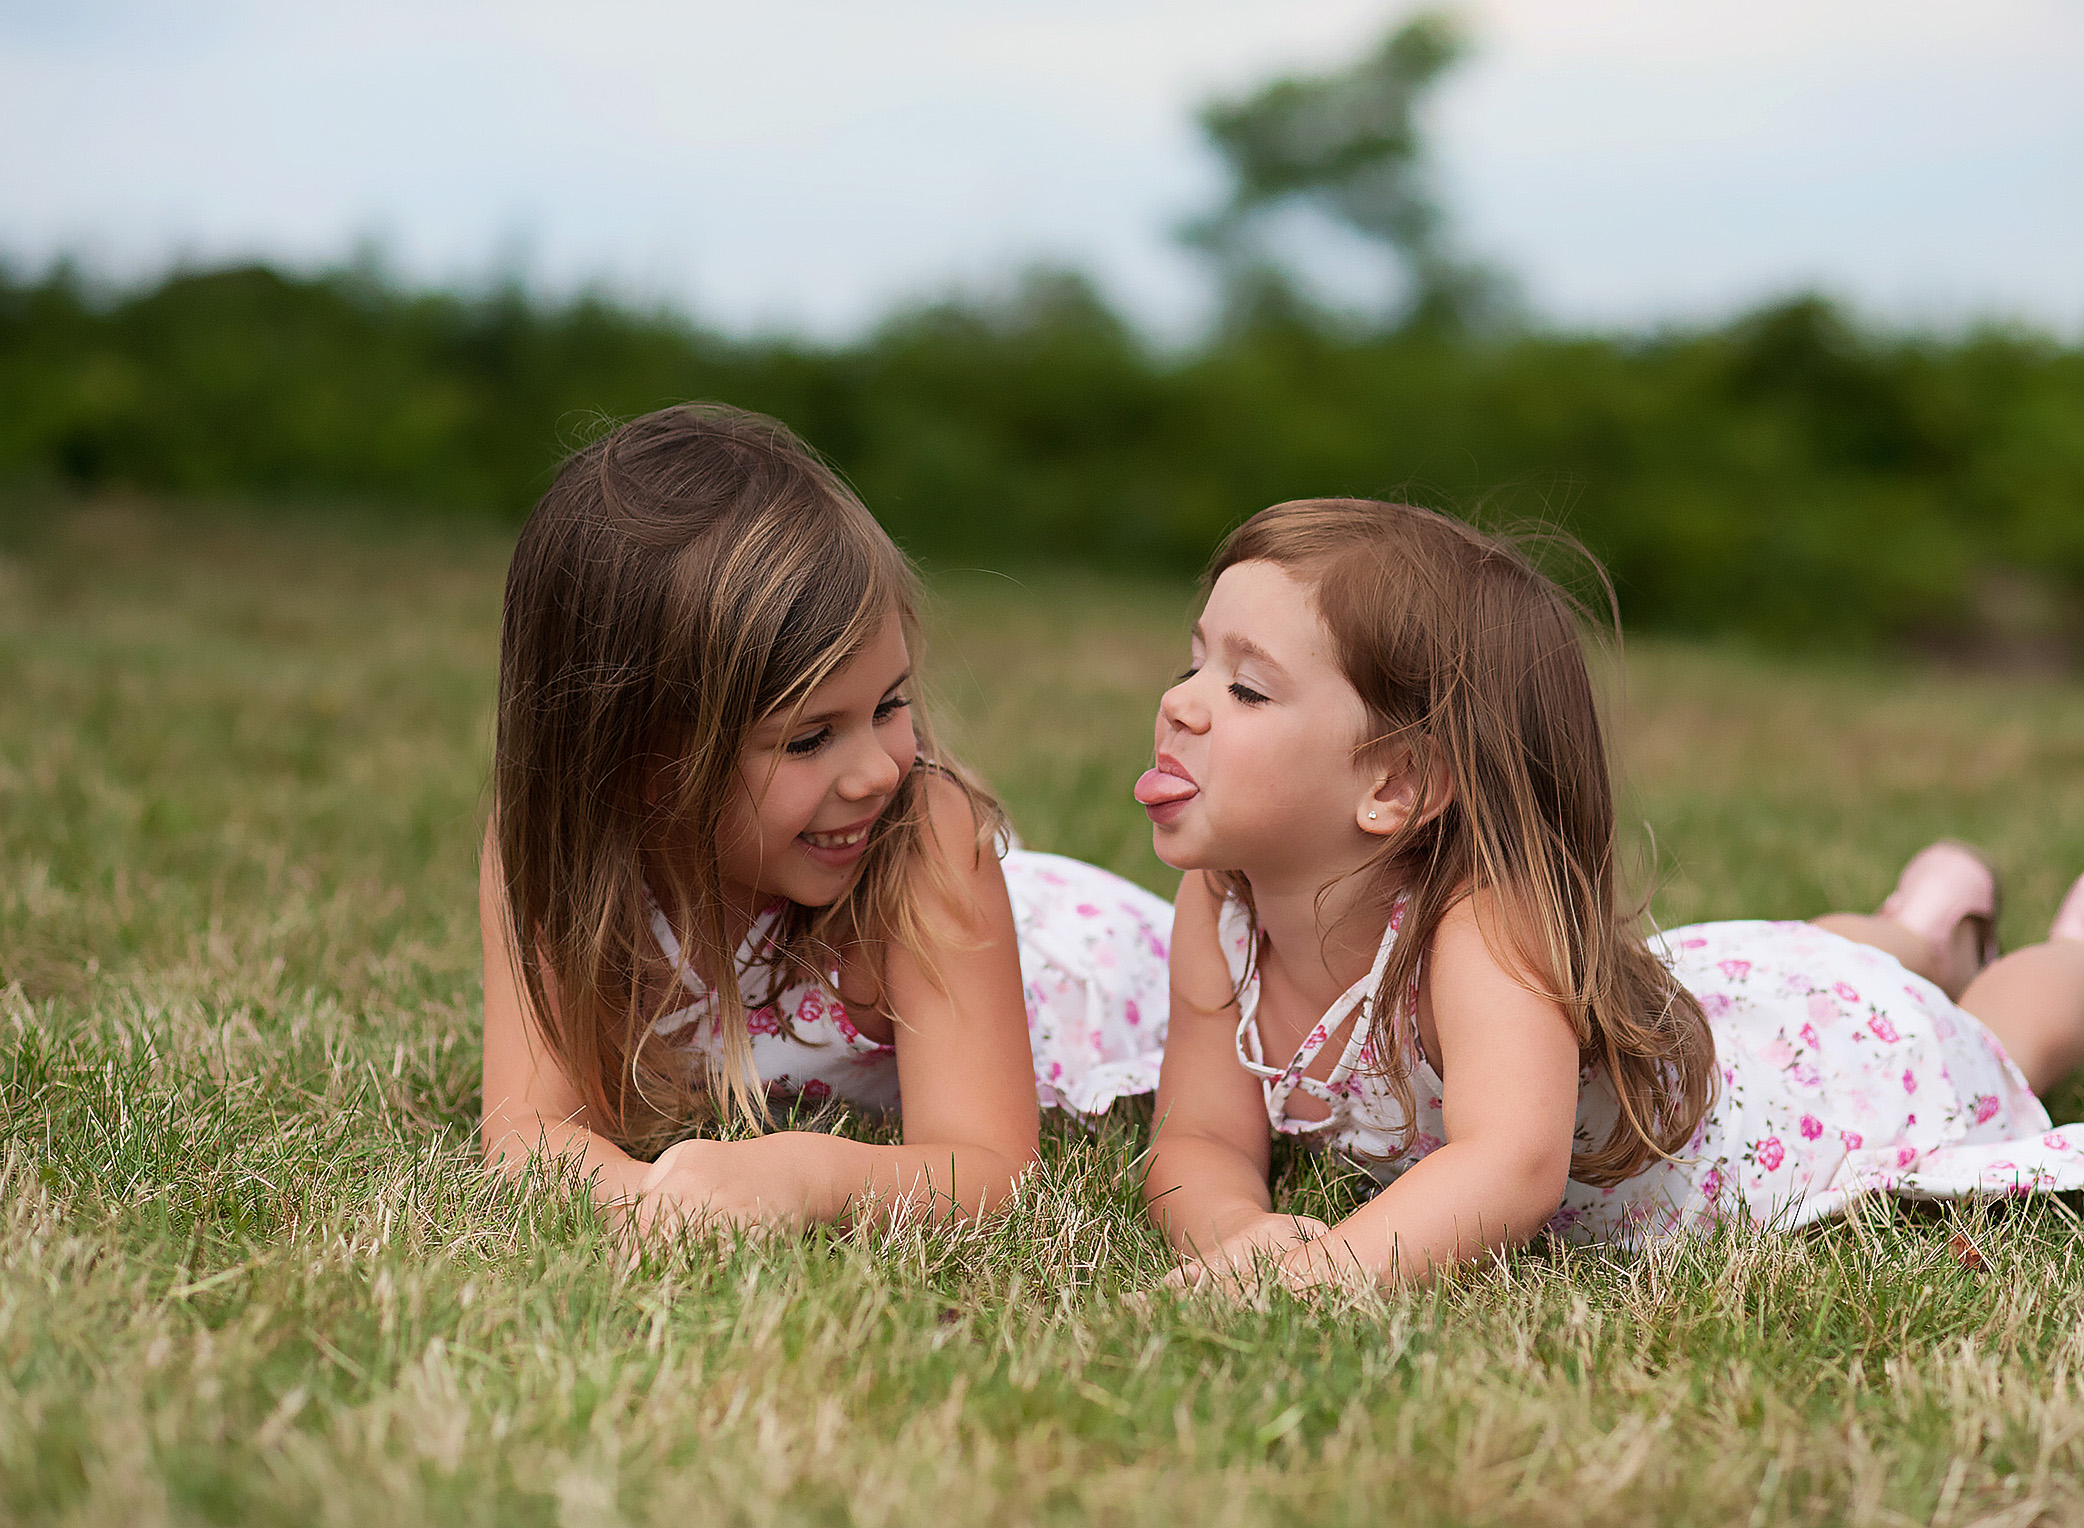 little sister stiking her tongue out at big sister